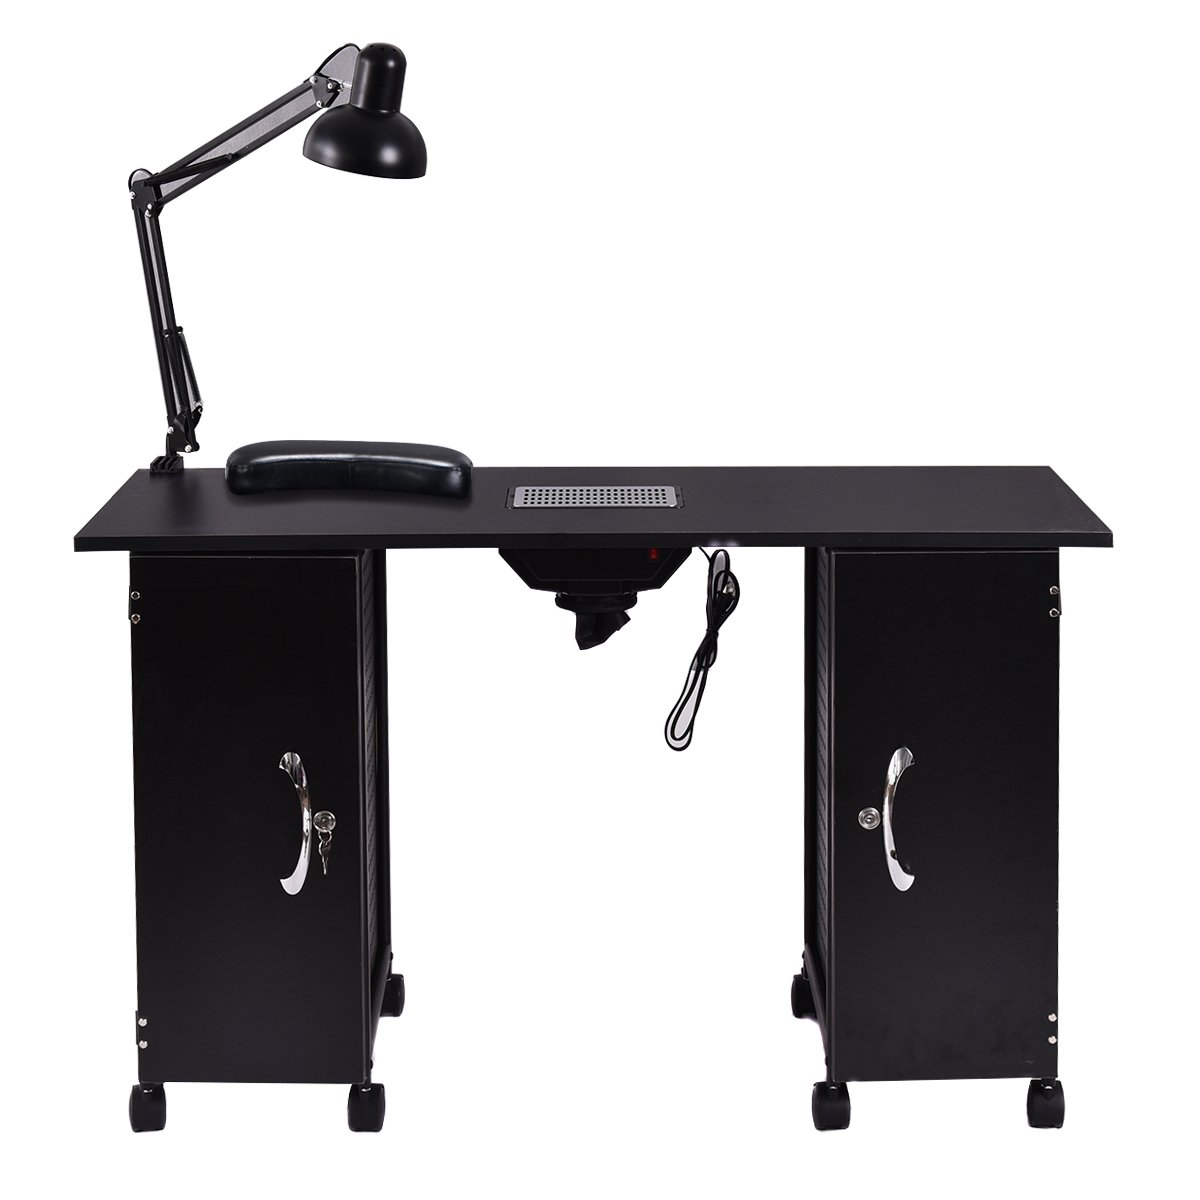 md-group Manicure Nail Table Station Black Steel Frame Beauty Spa Salon Equipment Drawer